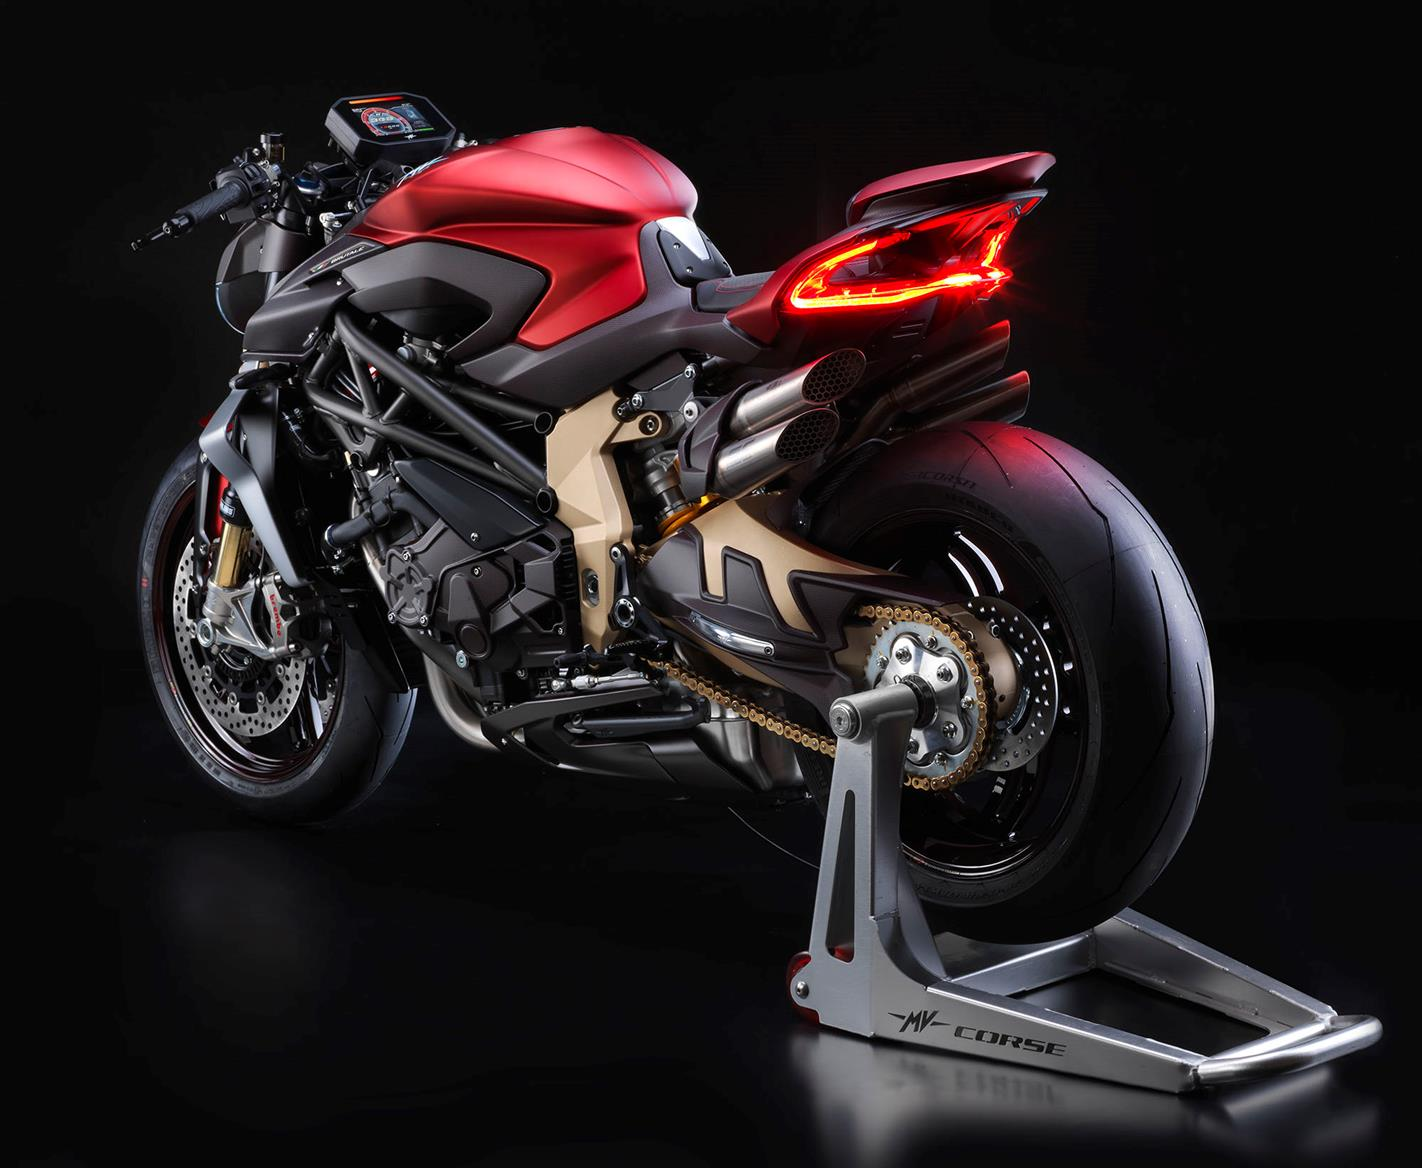 mv agusta brutale 1000 serie oro 2019 on review. Black Bedroom Furniture Sets. Home Design Ideas